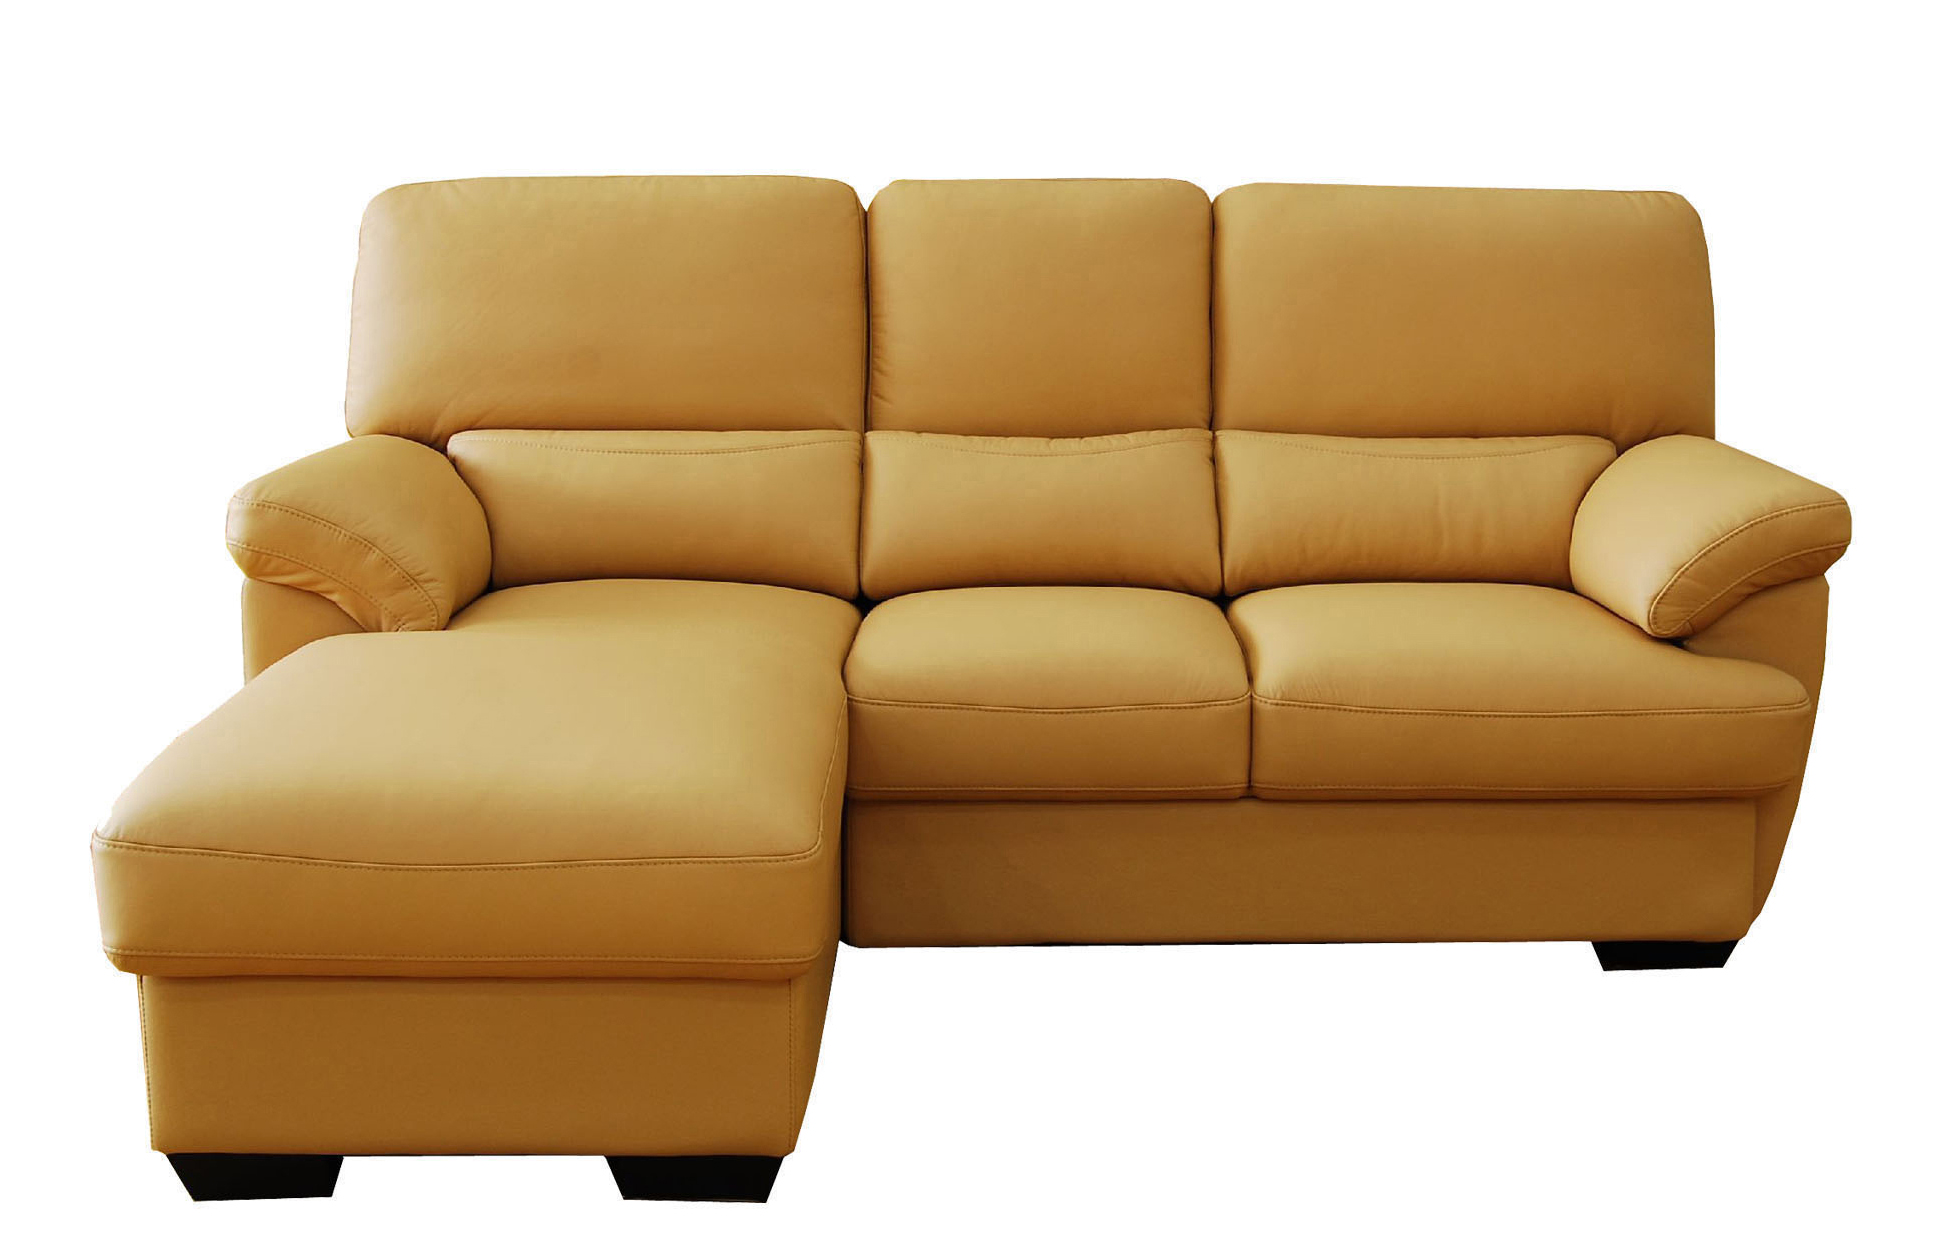 Superieur Part Leather Sofa(DIX3)